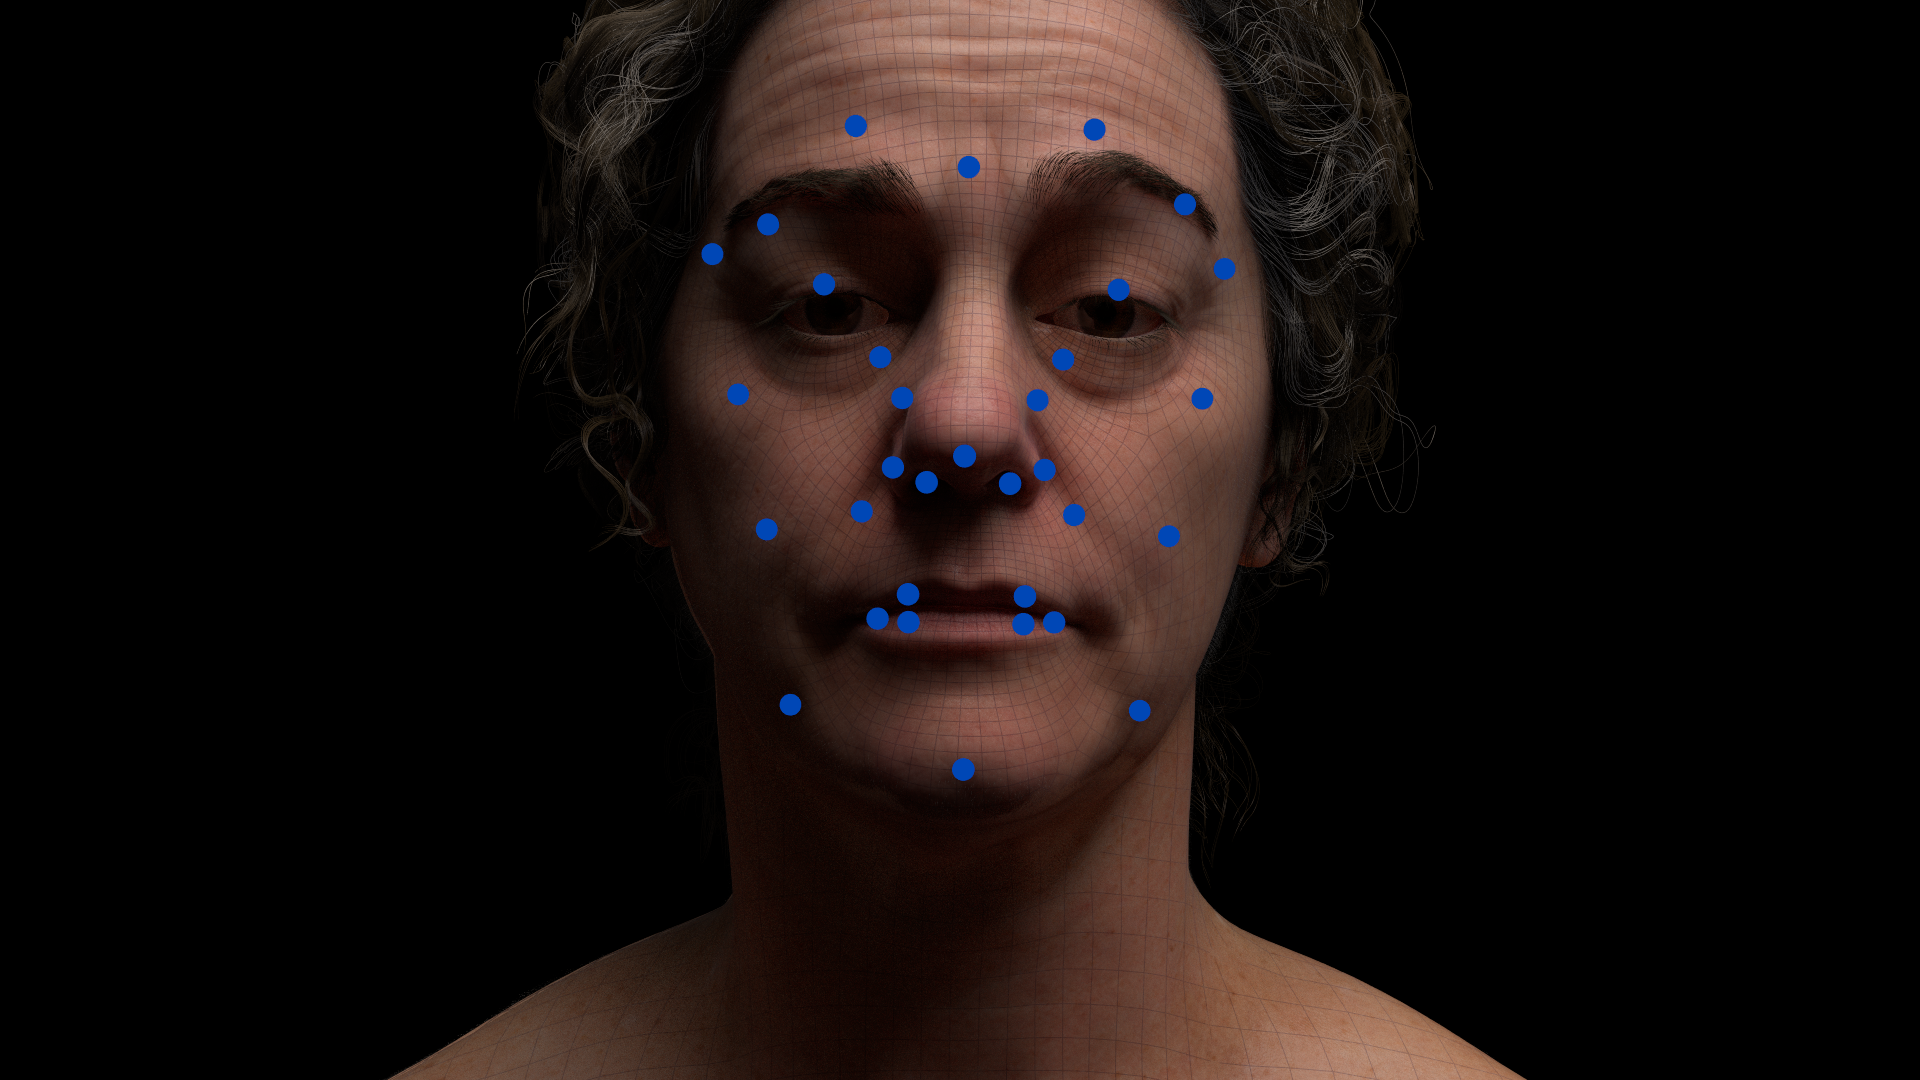 FACS-based facial rigs / Multiple levels of detail / Blendshapes Joints or a Hybrid / Rig on or off face